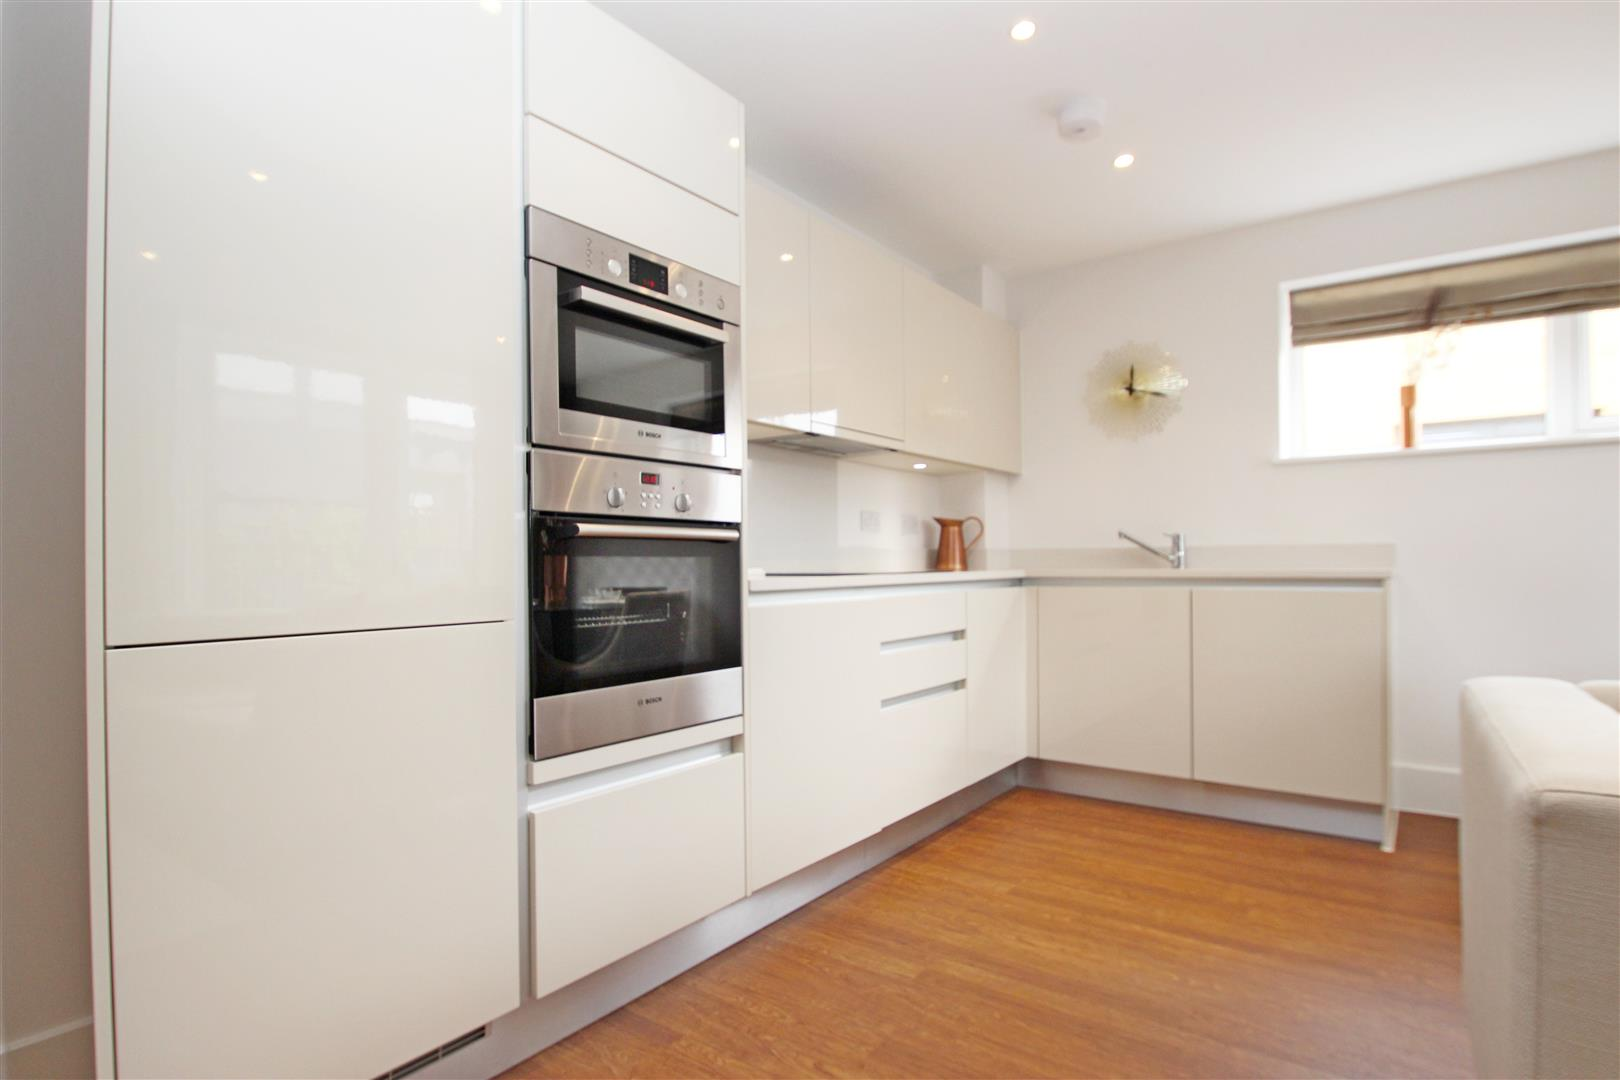 Attlee Court, Stanmore Place, HA7